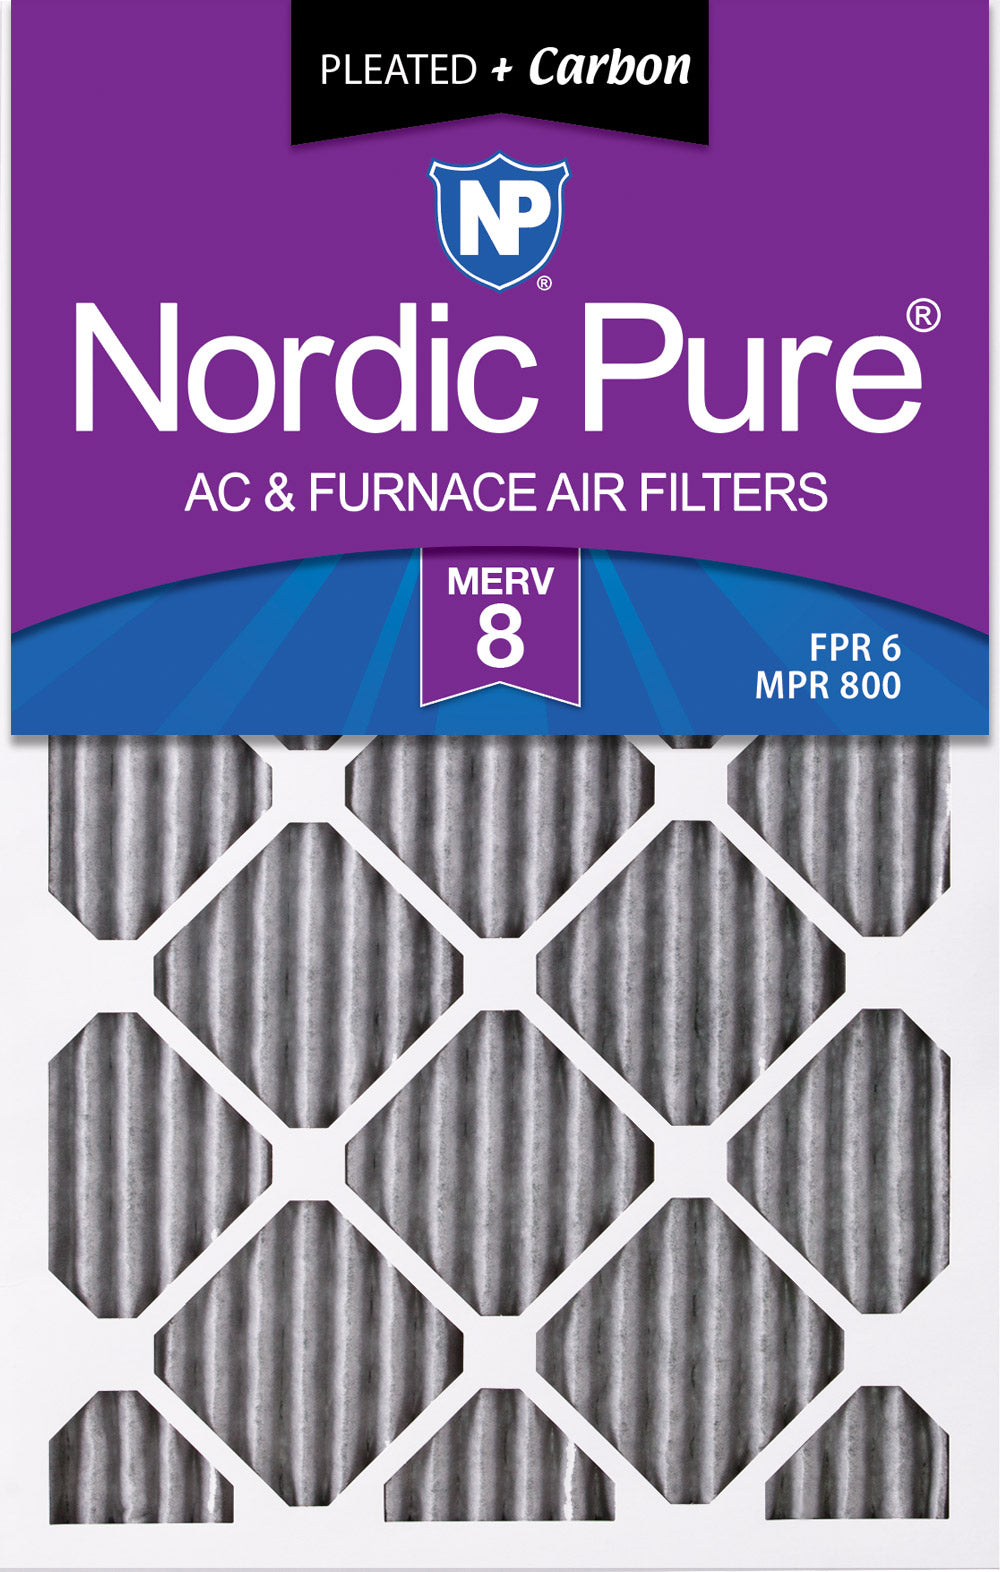 12x36x1 Furnace Air Filters MERV 8 Pleated Plus Carbon 6 Pack